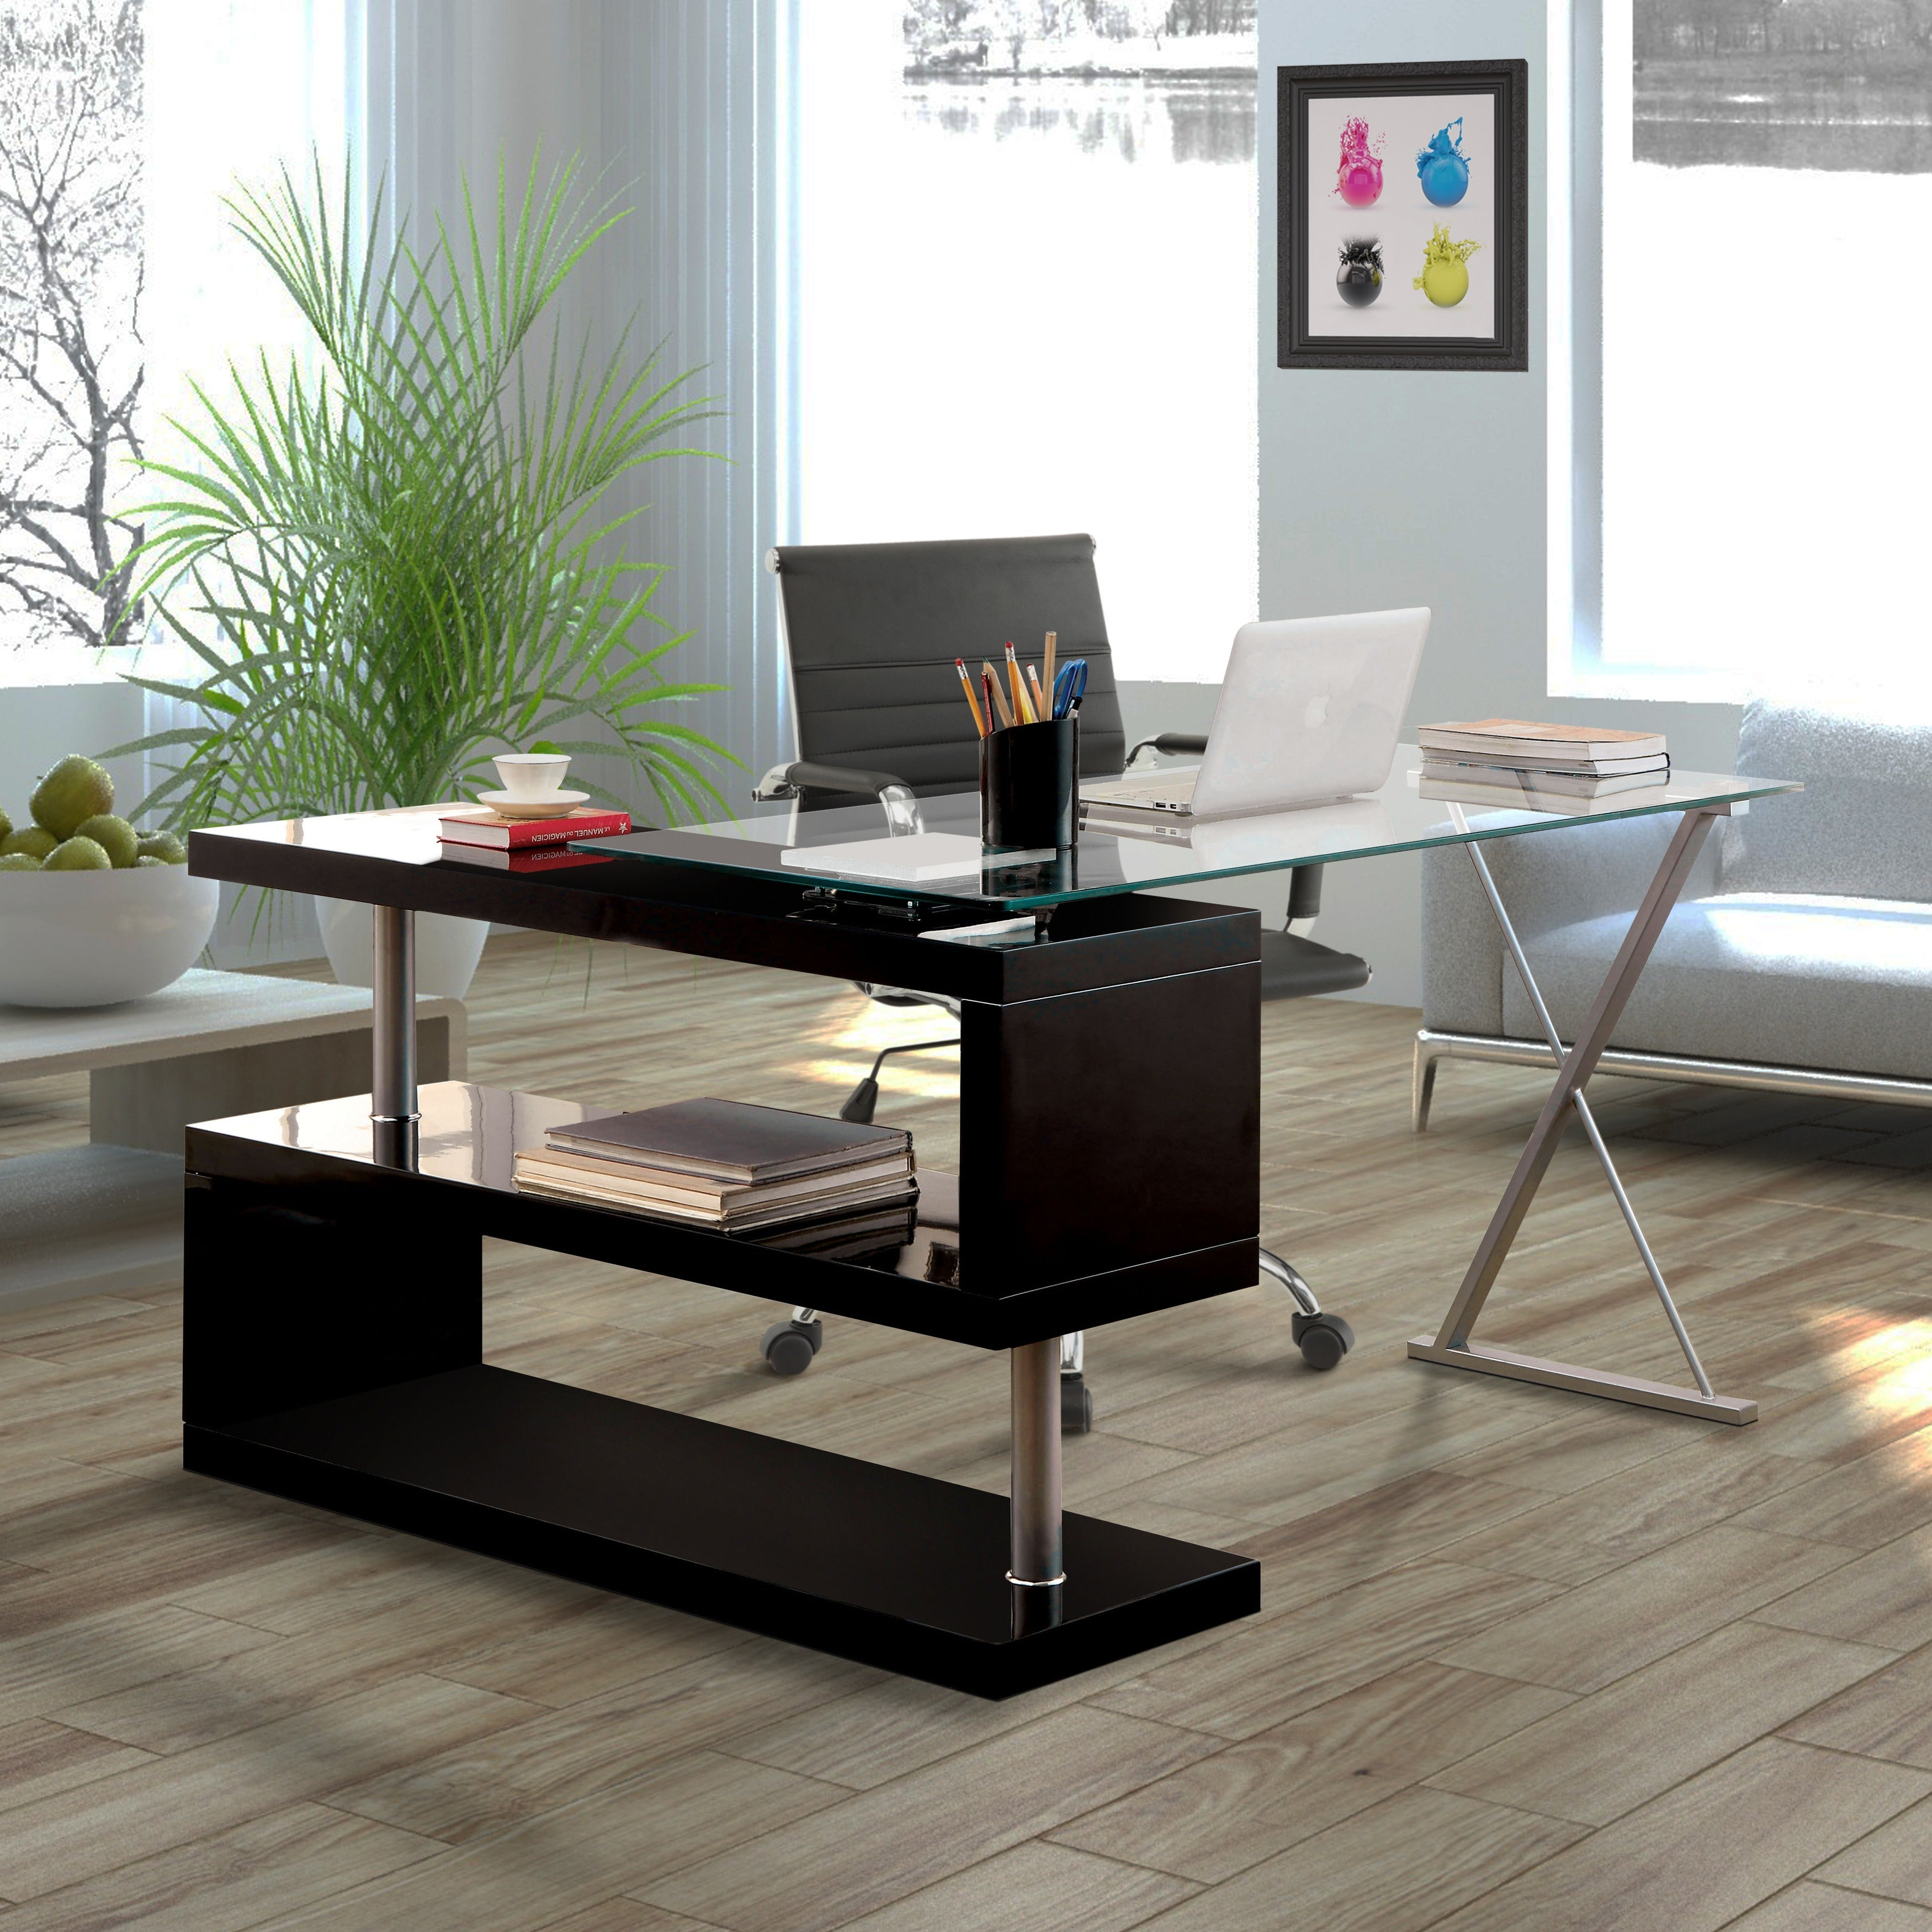 Furniture of America Marisa Contemporary Convertible Executive Desk - Free  Shipping Today - Overstock.com - 18170258